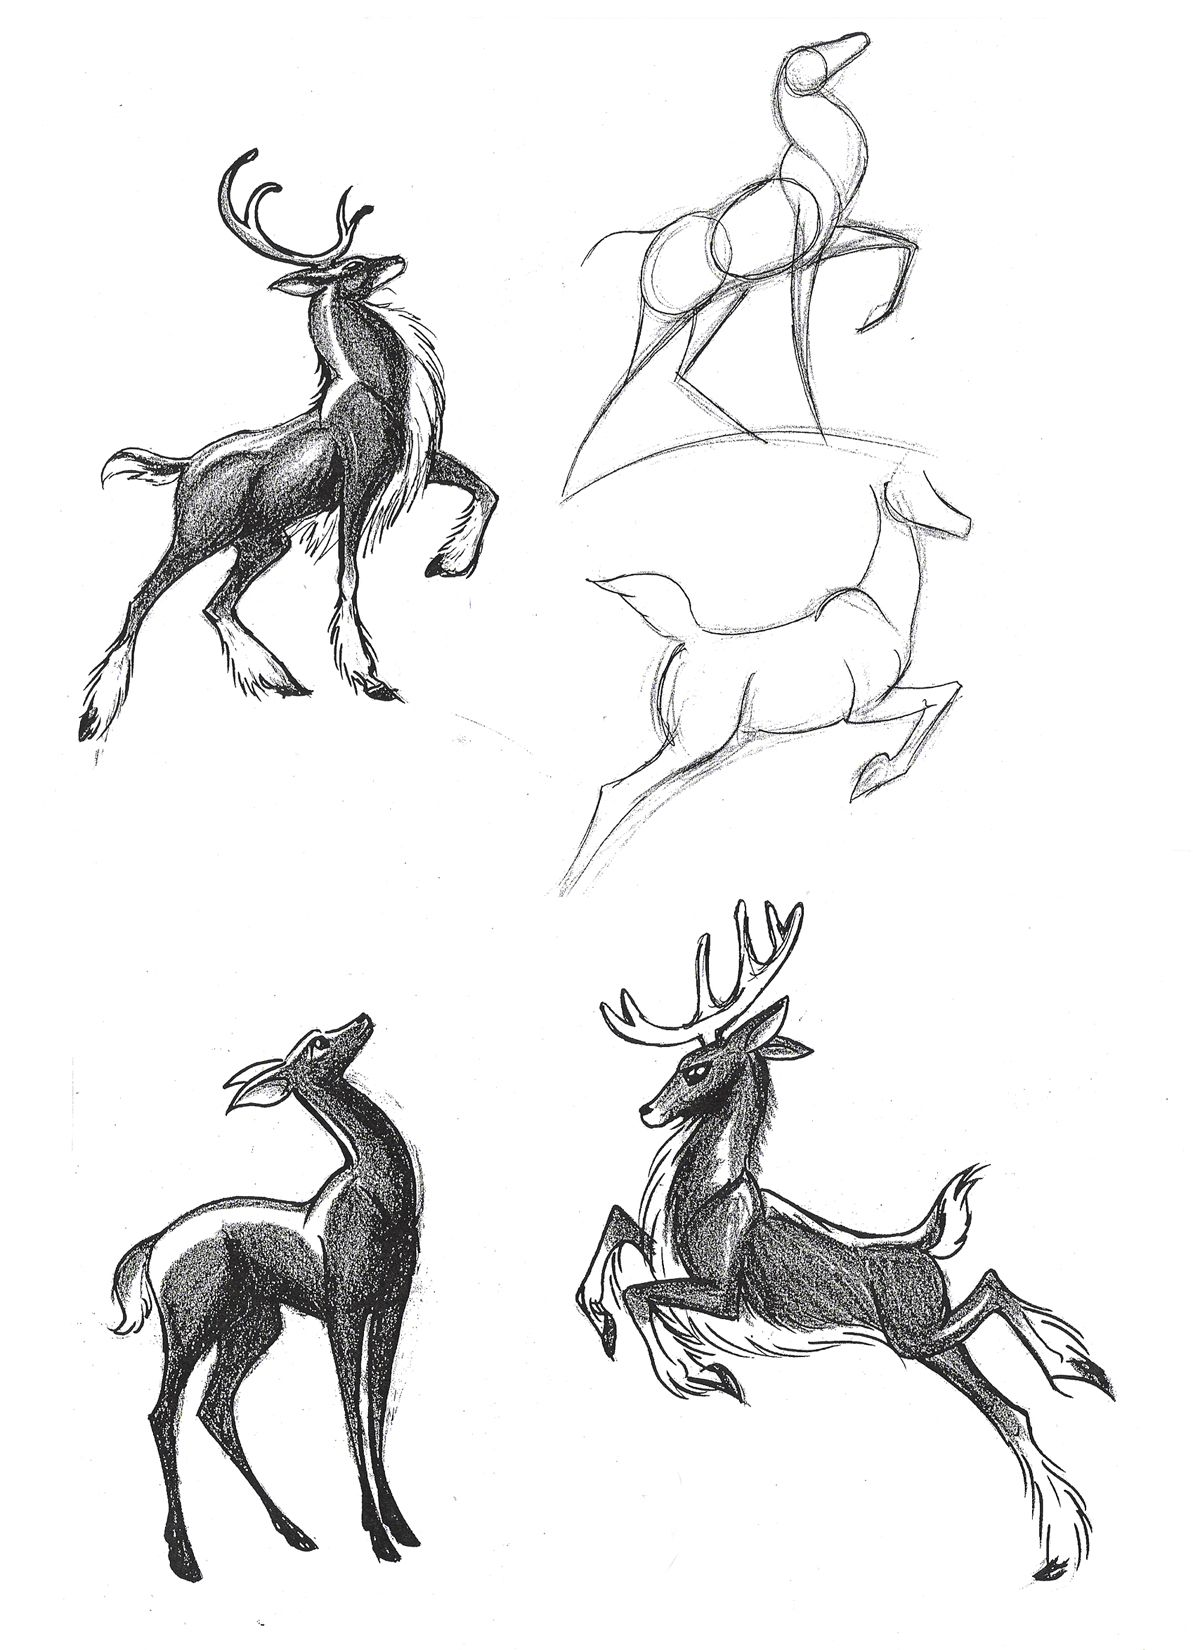 Deer. Leaping, pose | How to Draw | Pinterest | Pose, Drawings and ...